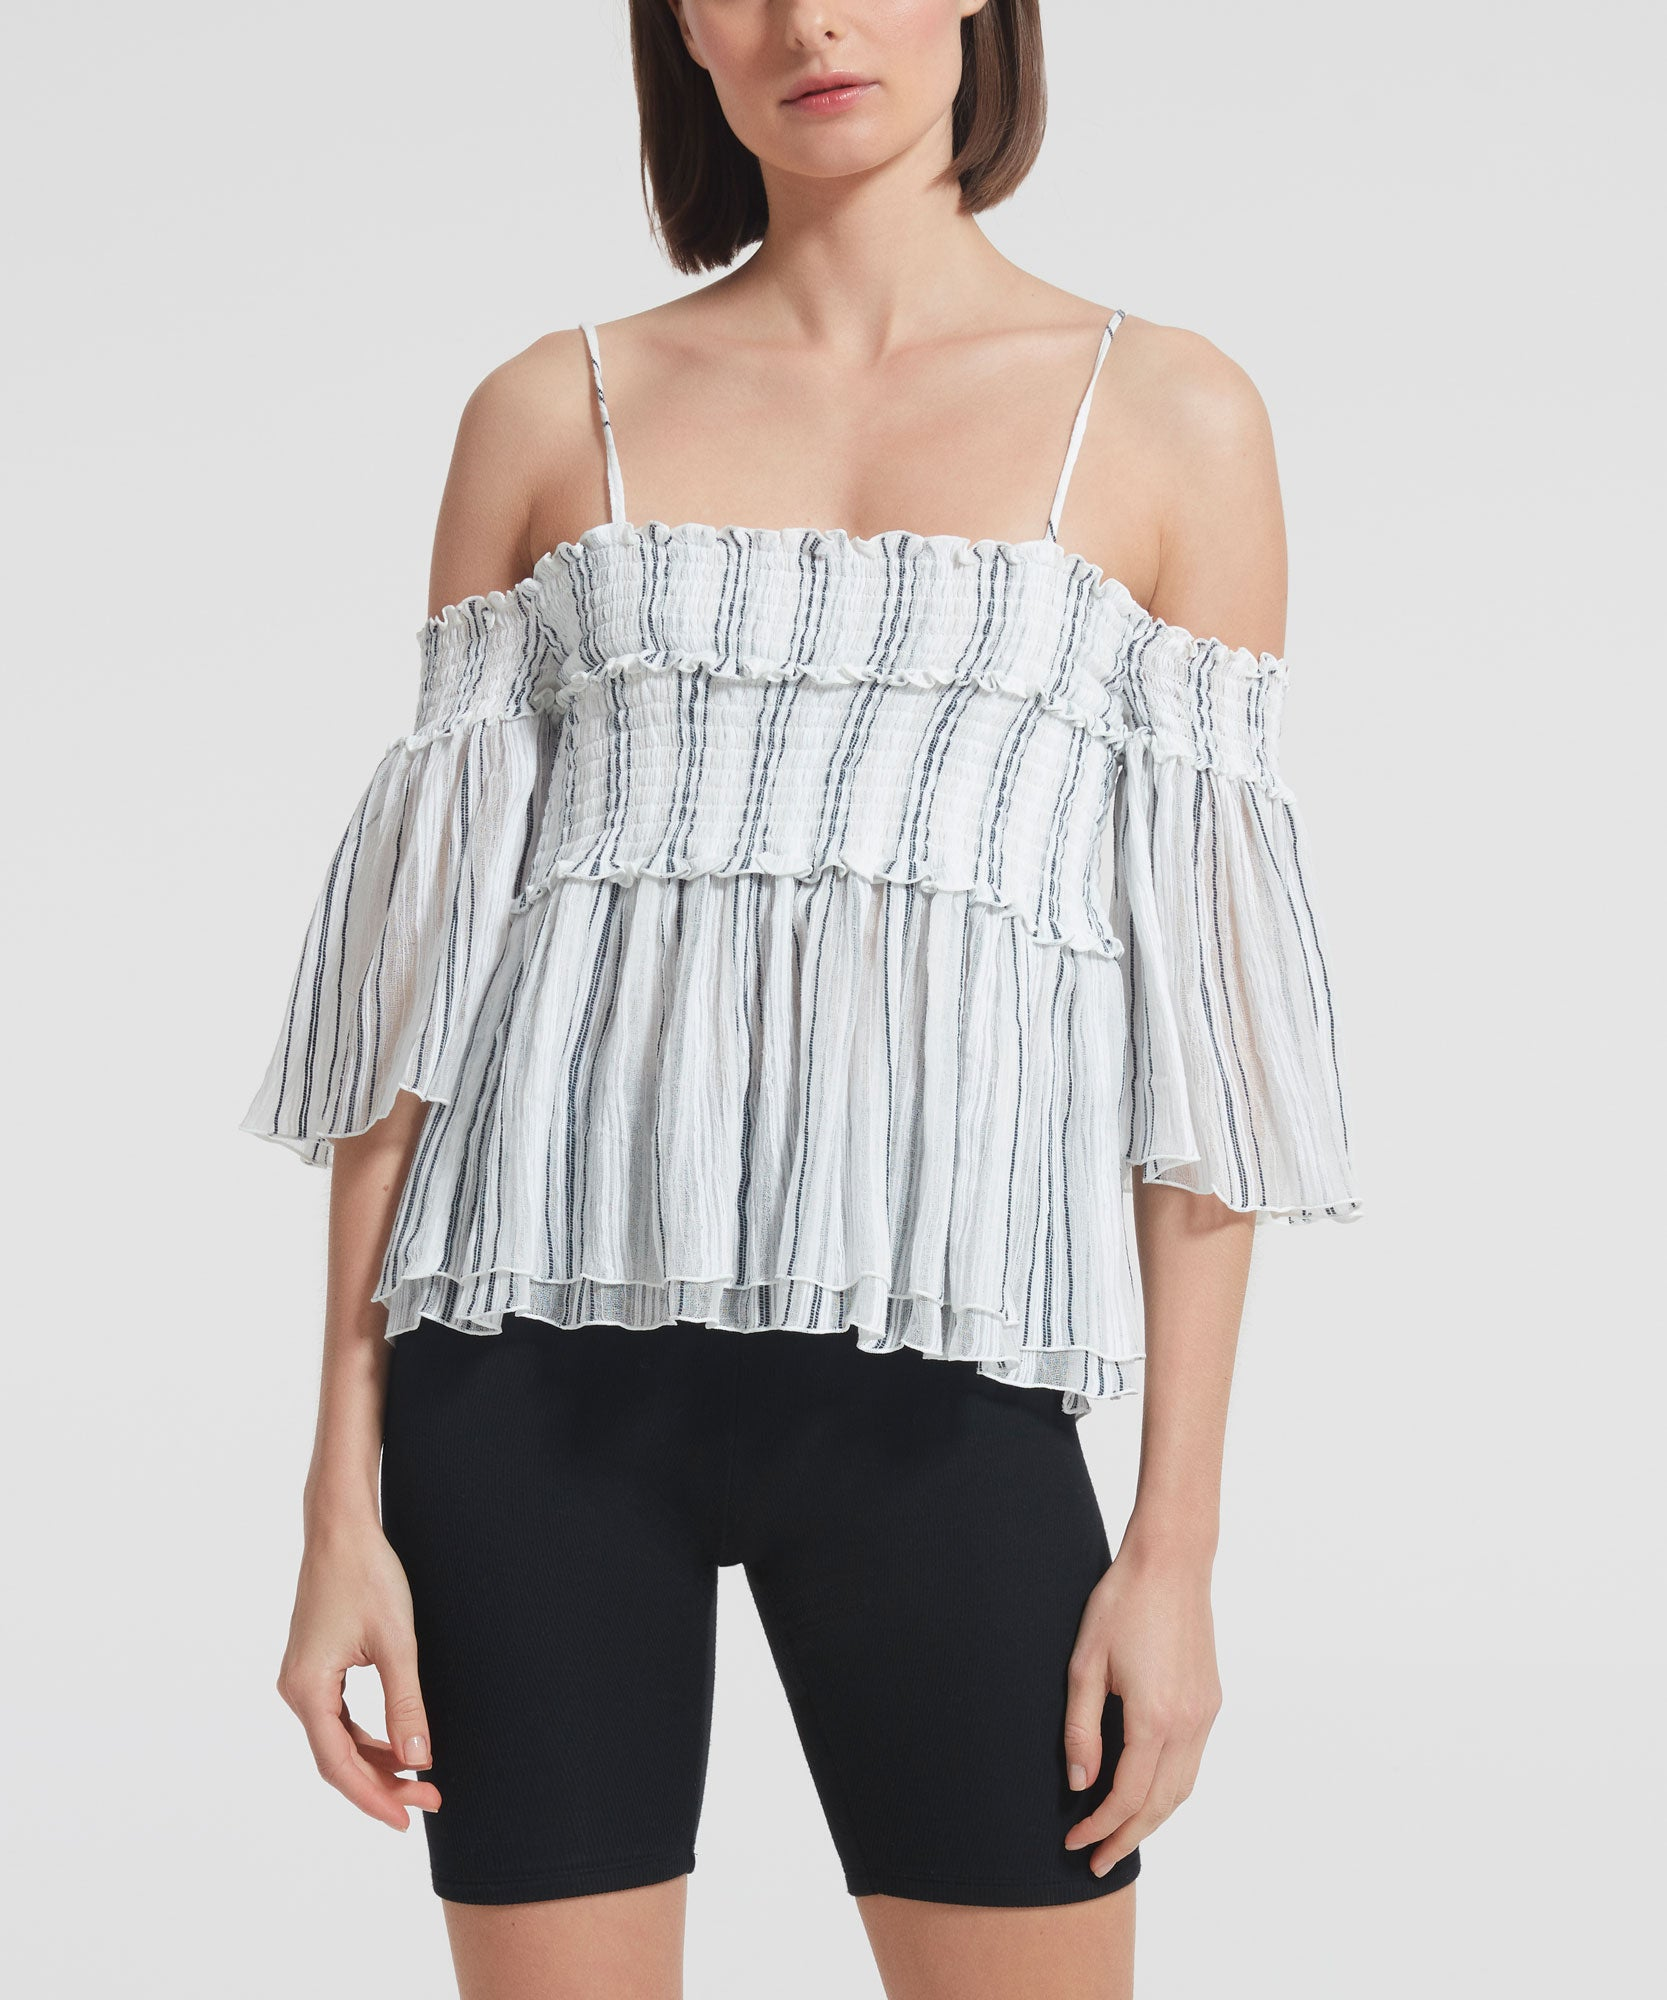 Chalk and Midnight Stripe Cotton Gauze Ruched Tank Top - Women's Off-the-shoulder Tank Top by ATM Anthony Thomas Melillo